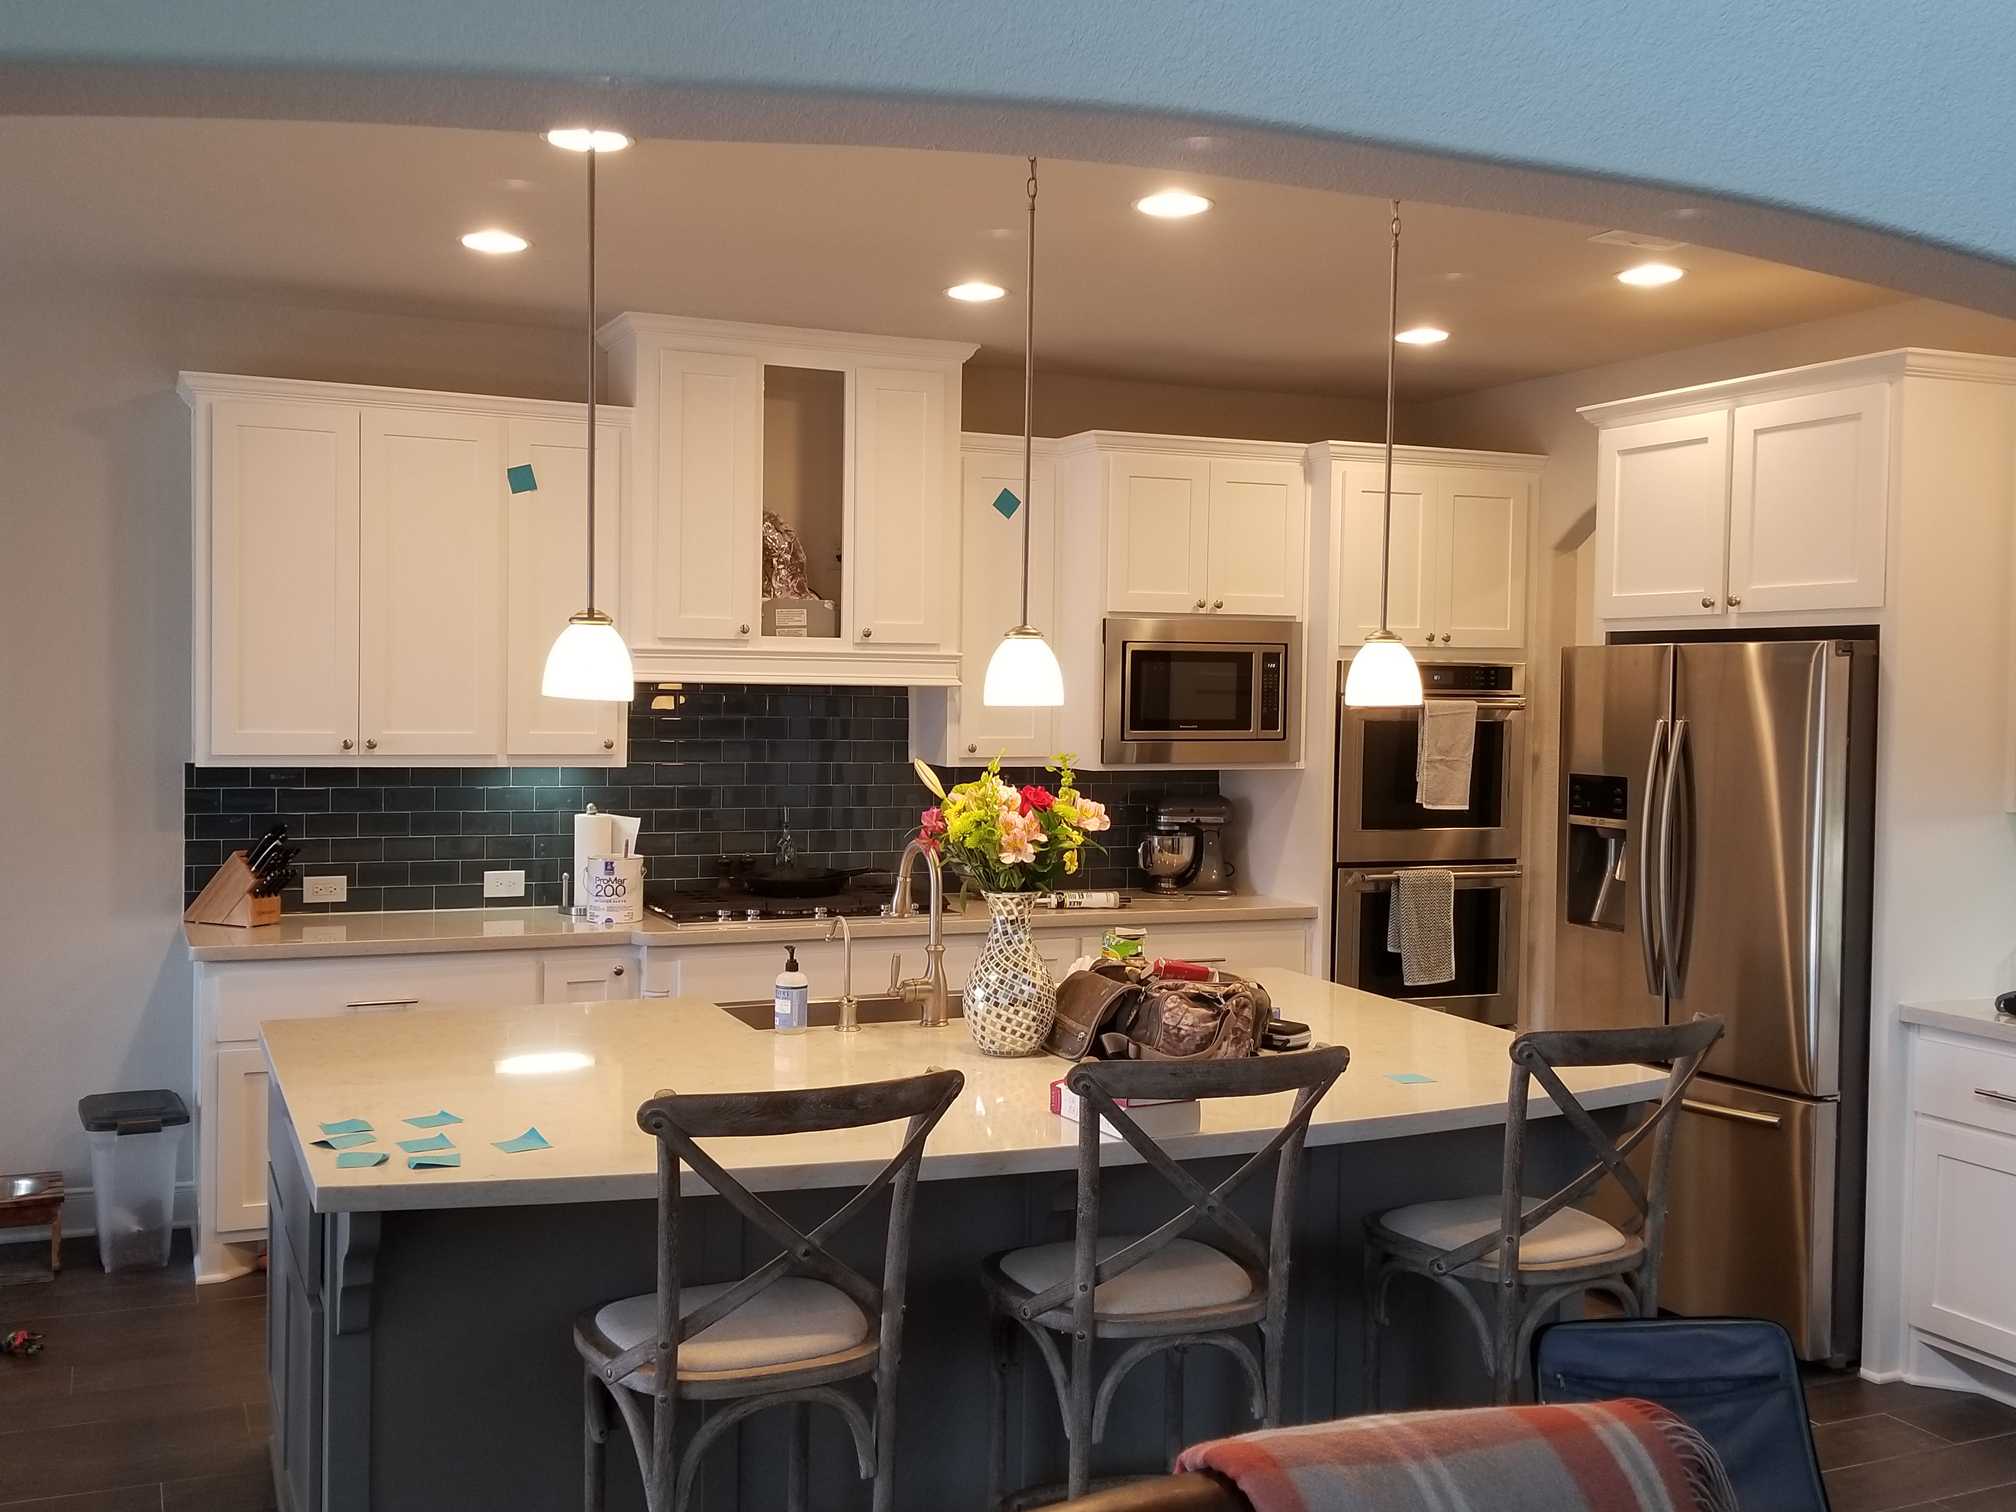 Buy custom kitchen cabinets factory direct in Leonardo NJ, Buy custom bathroom cabinets in Leonardo NJ, Buy custom shaker cabinets in Leonardo NJ, Buy custom craftsman cabinets in Leonardo NJ